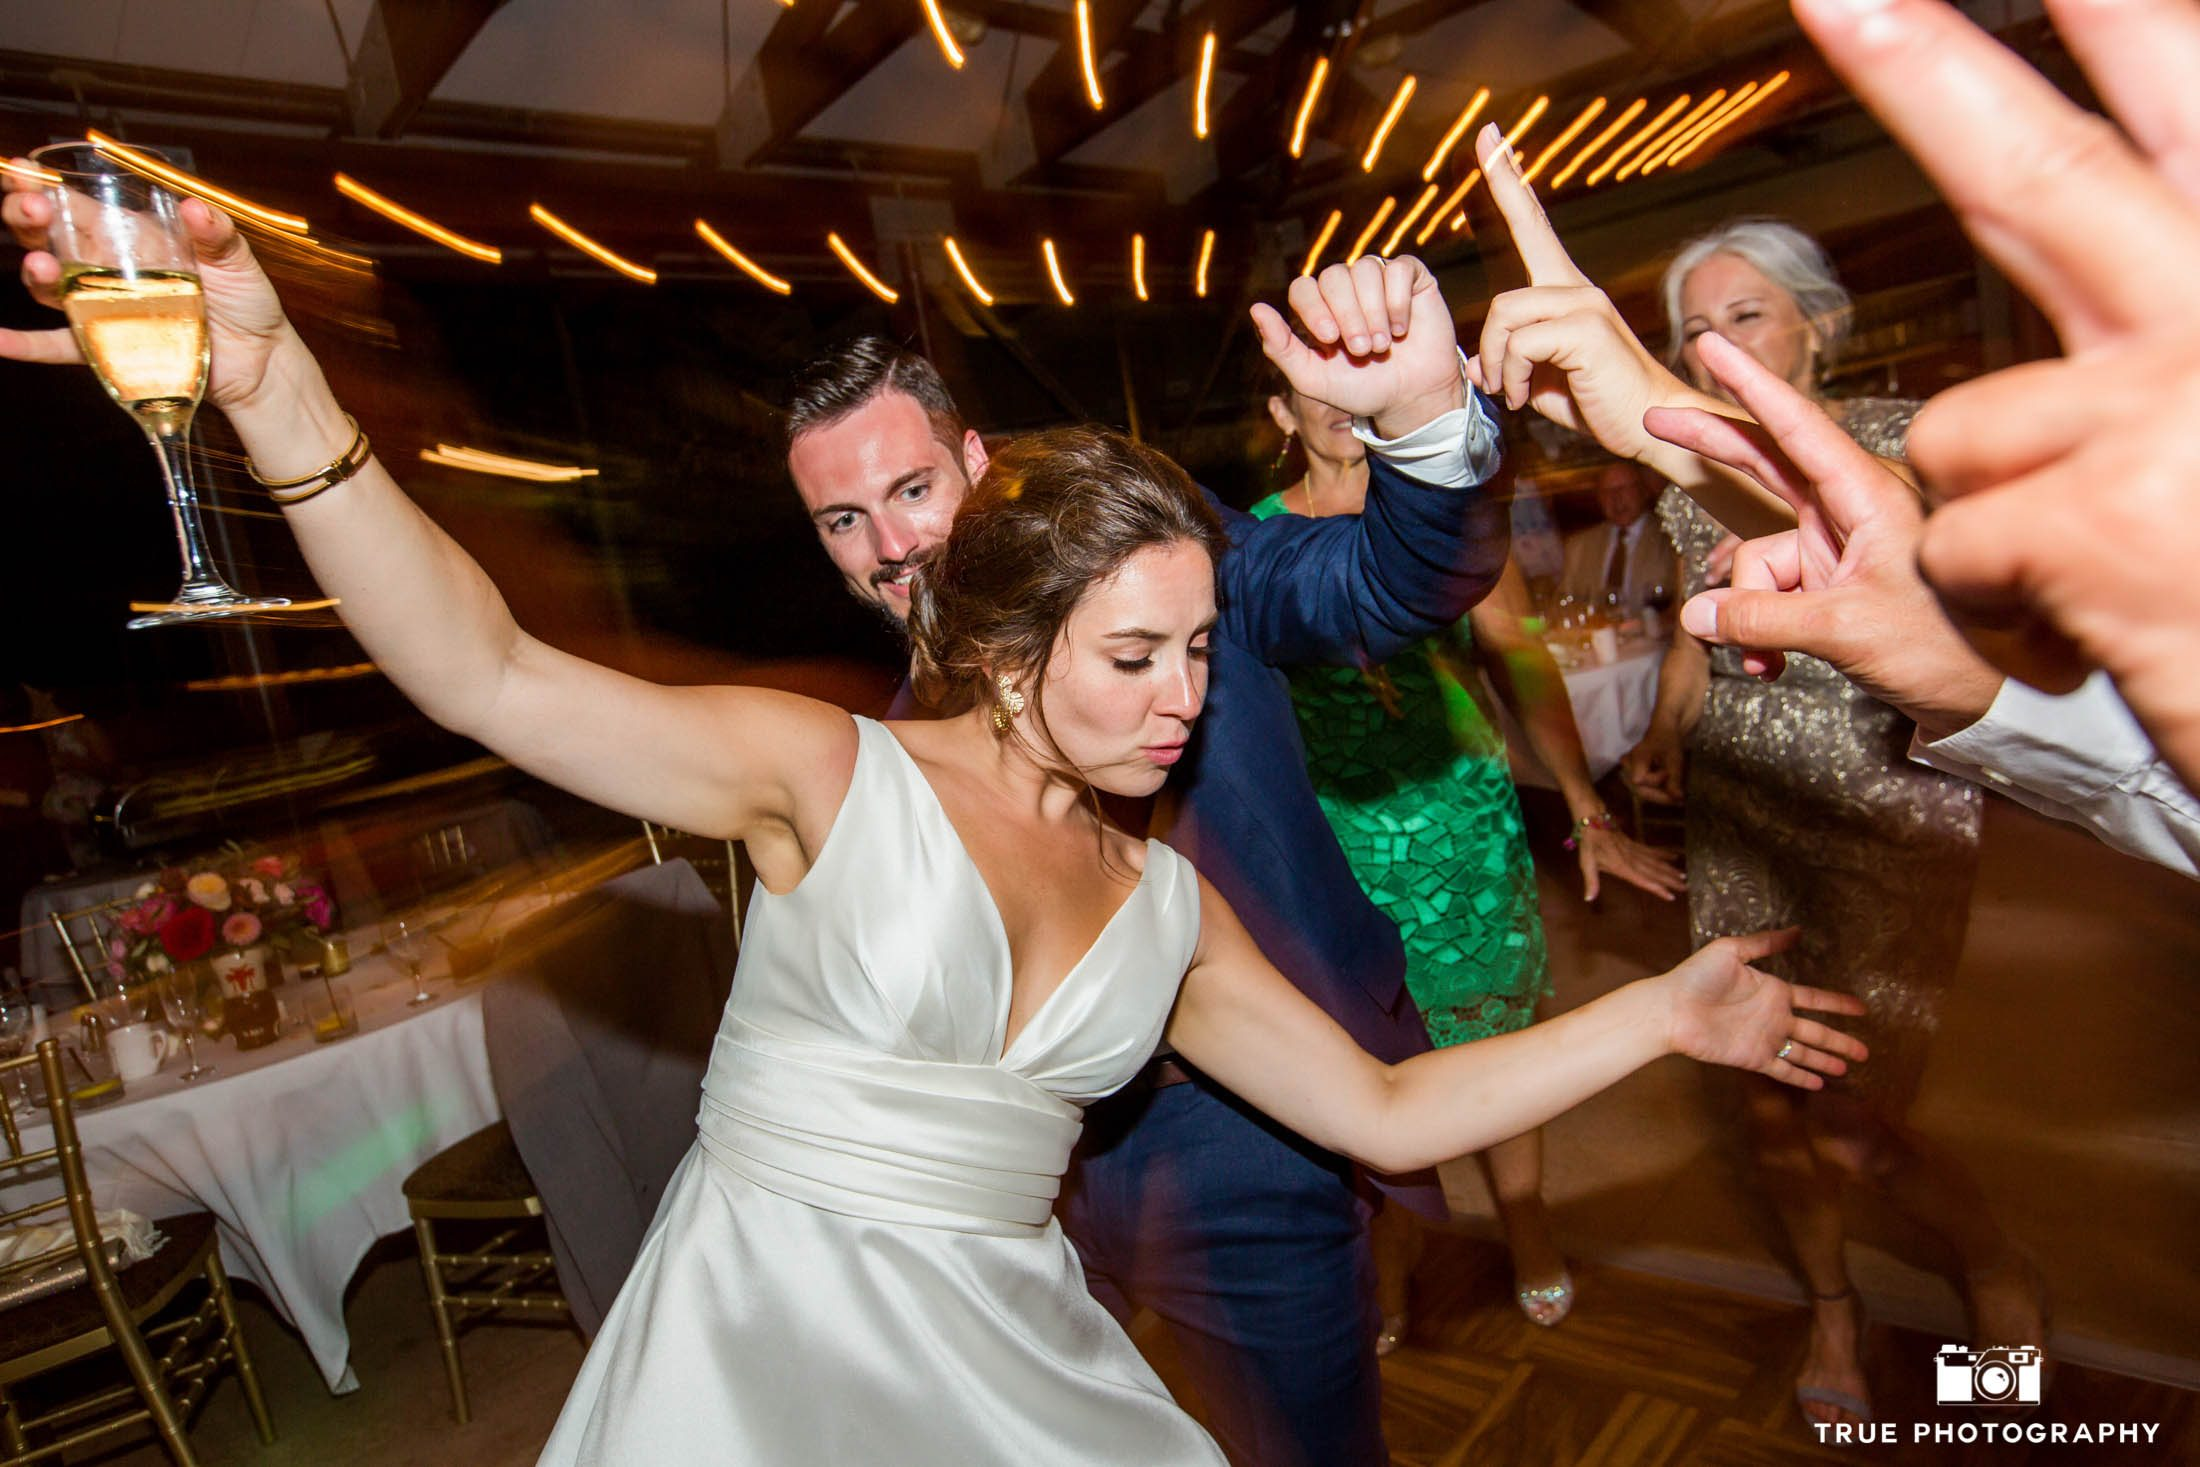 Candid wedding dancing photo